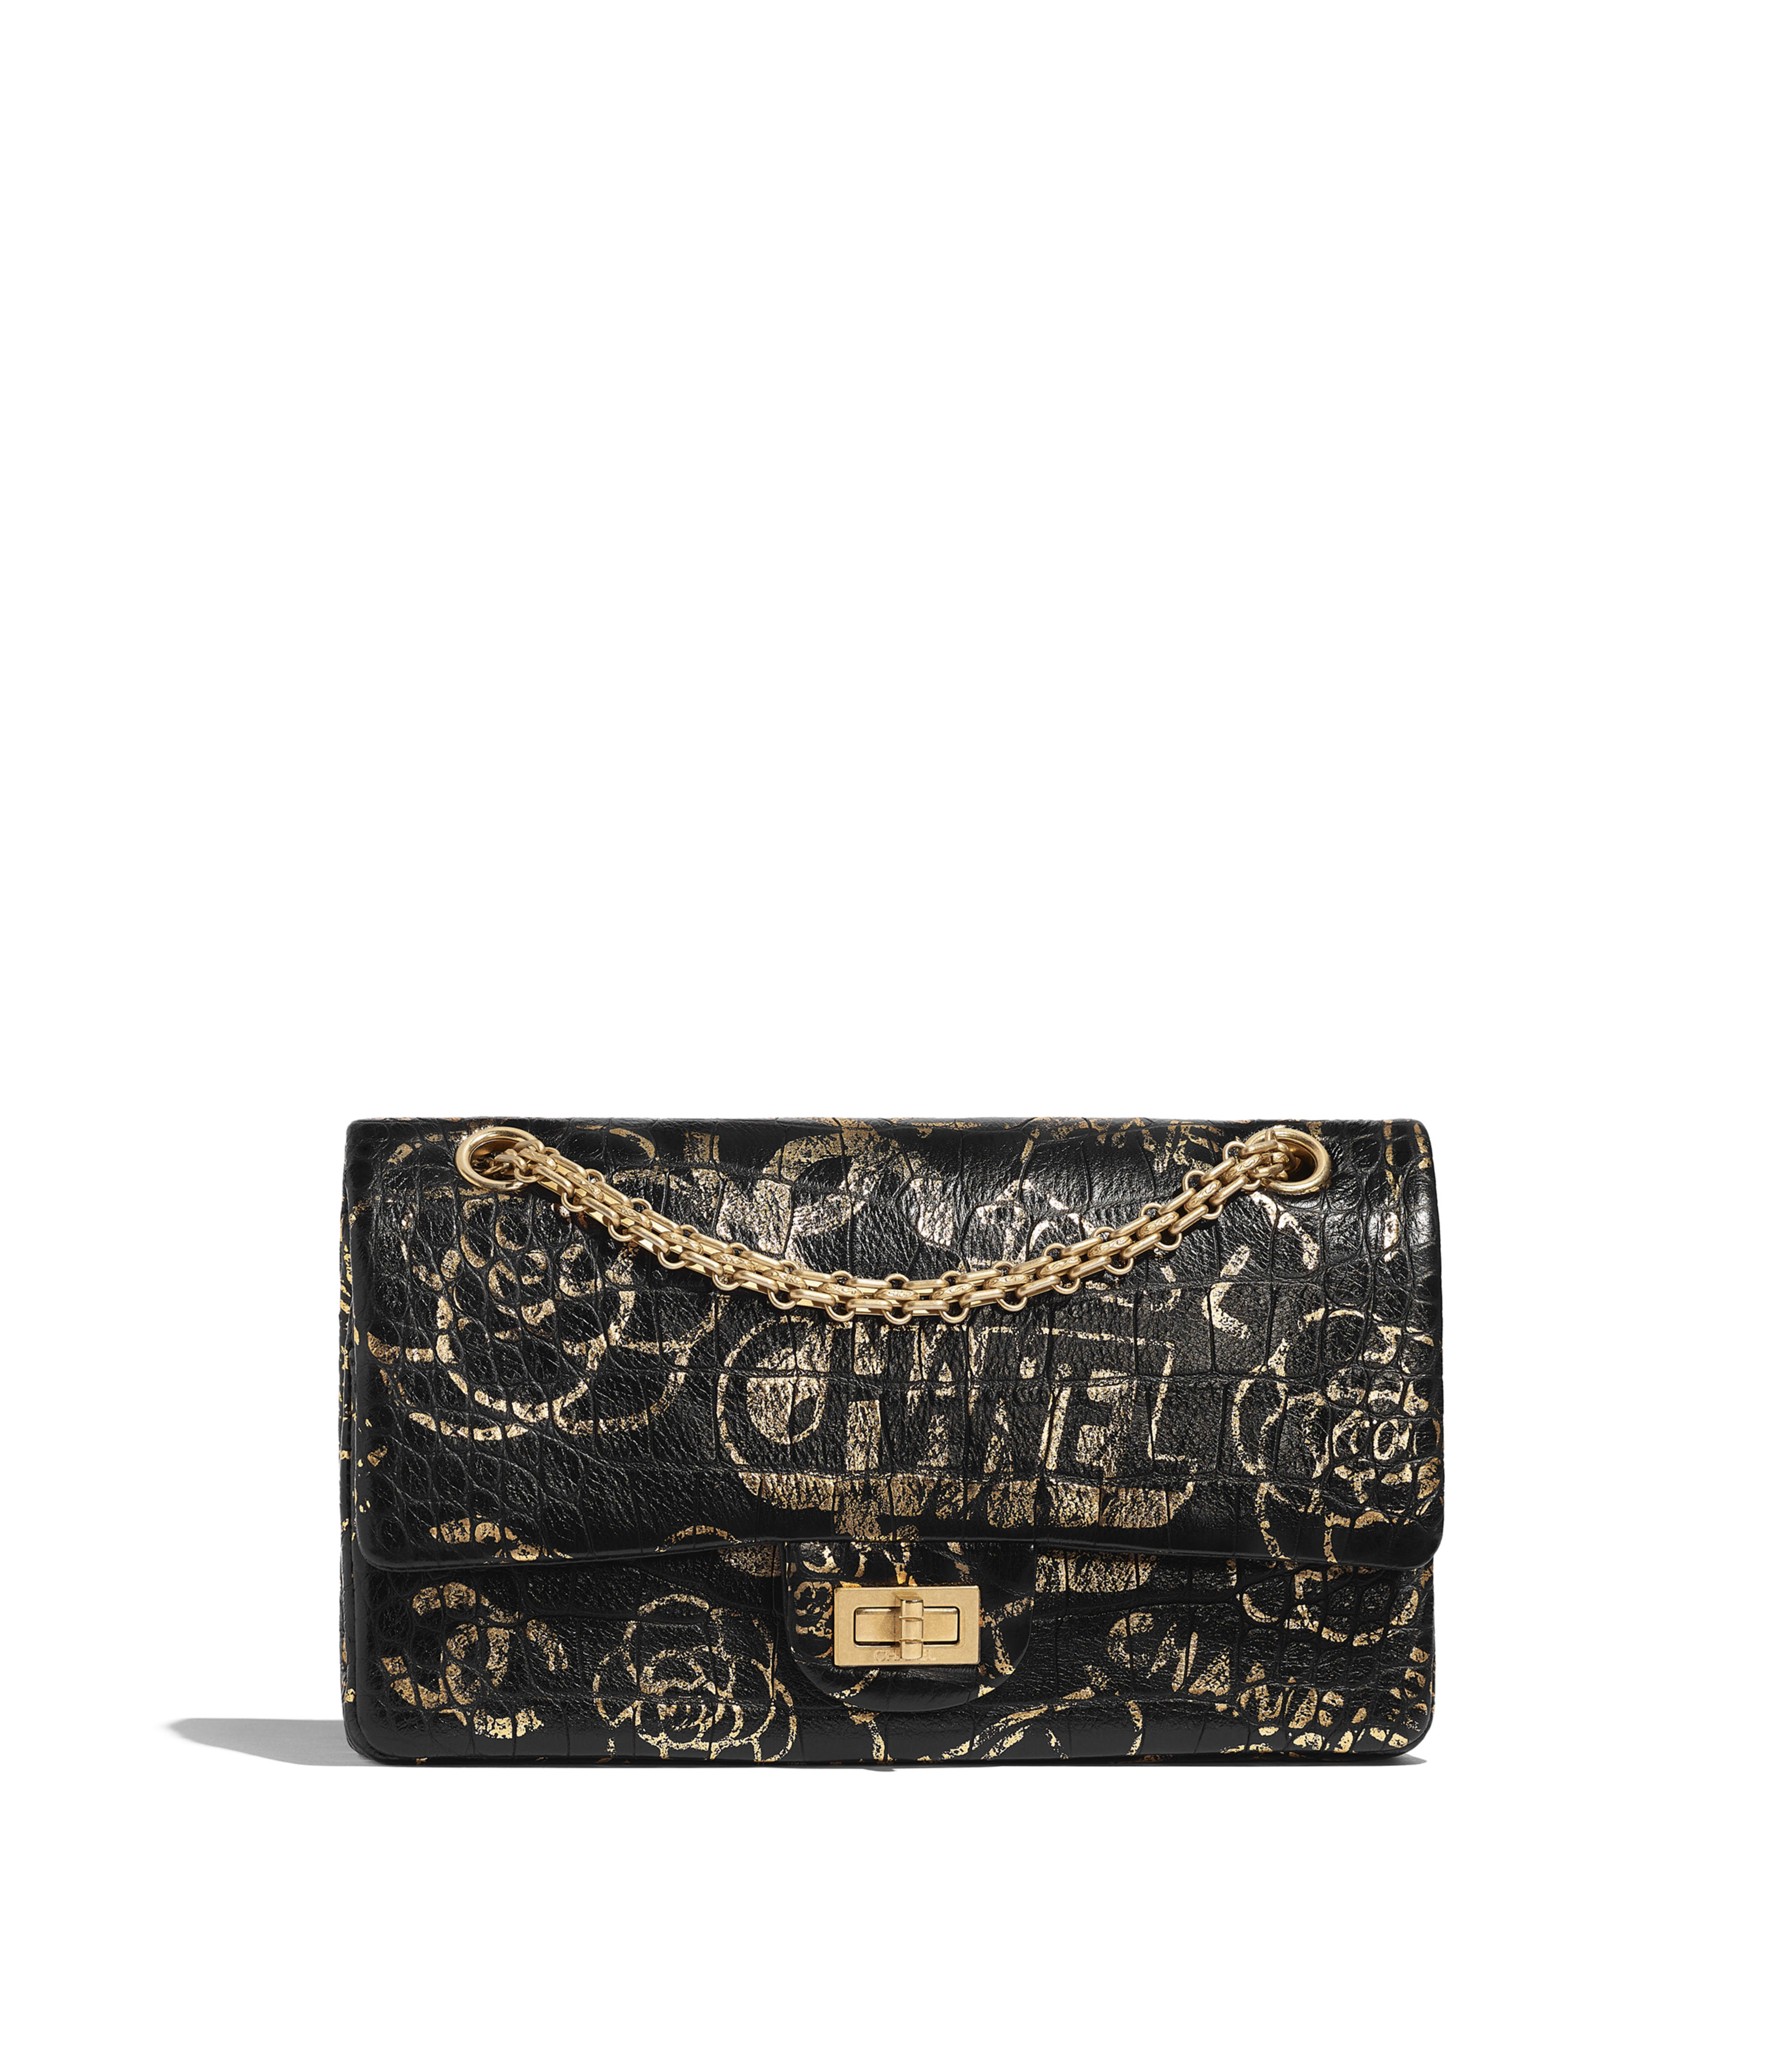 fce9f143142269 2.55 Handbag Crocodile Embossed Printed Leather & Gold-Tone Metal, Black &  Gold Ref. A37586B00979N0784